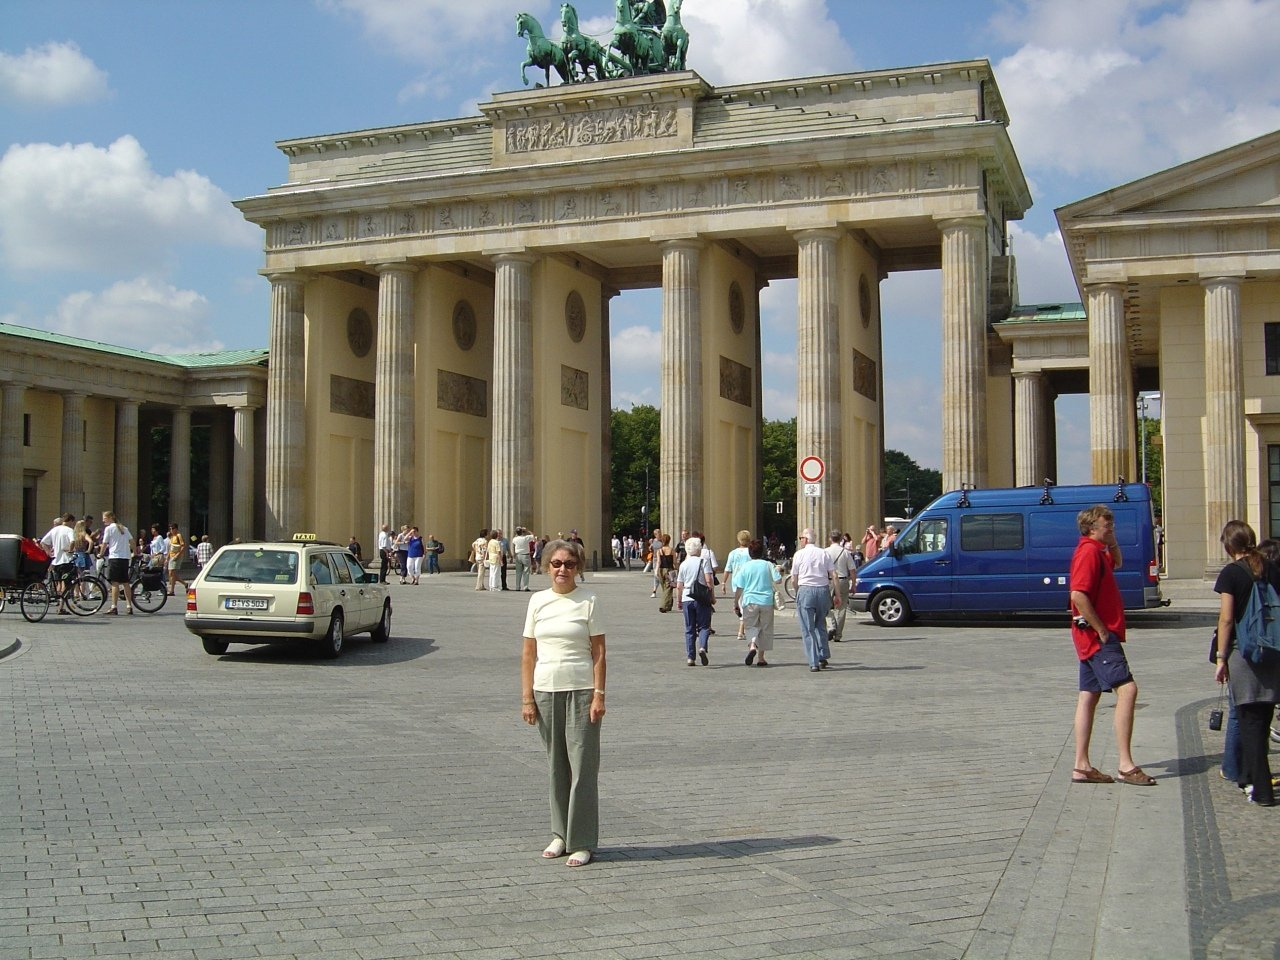 Maria at Brandenburg Gate, Berlin